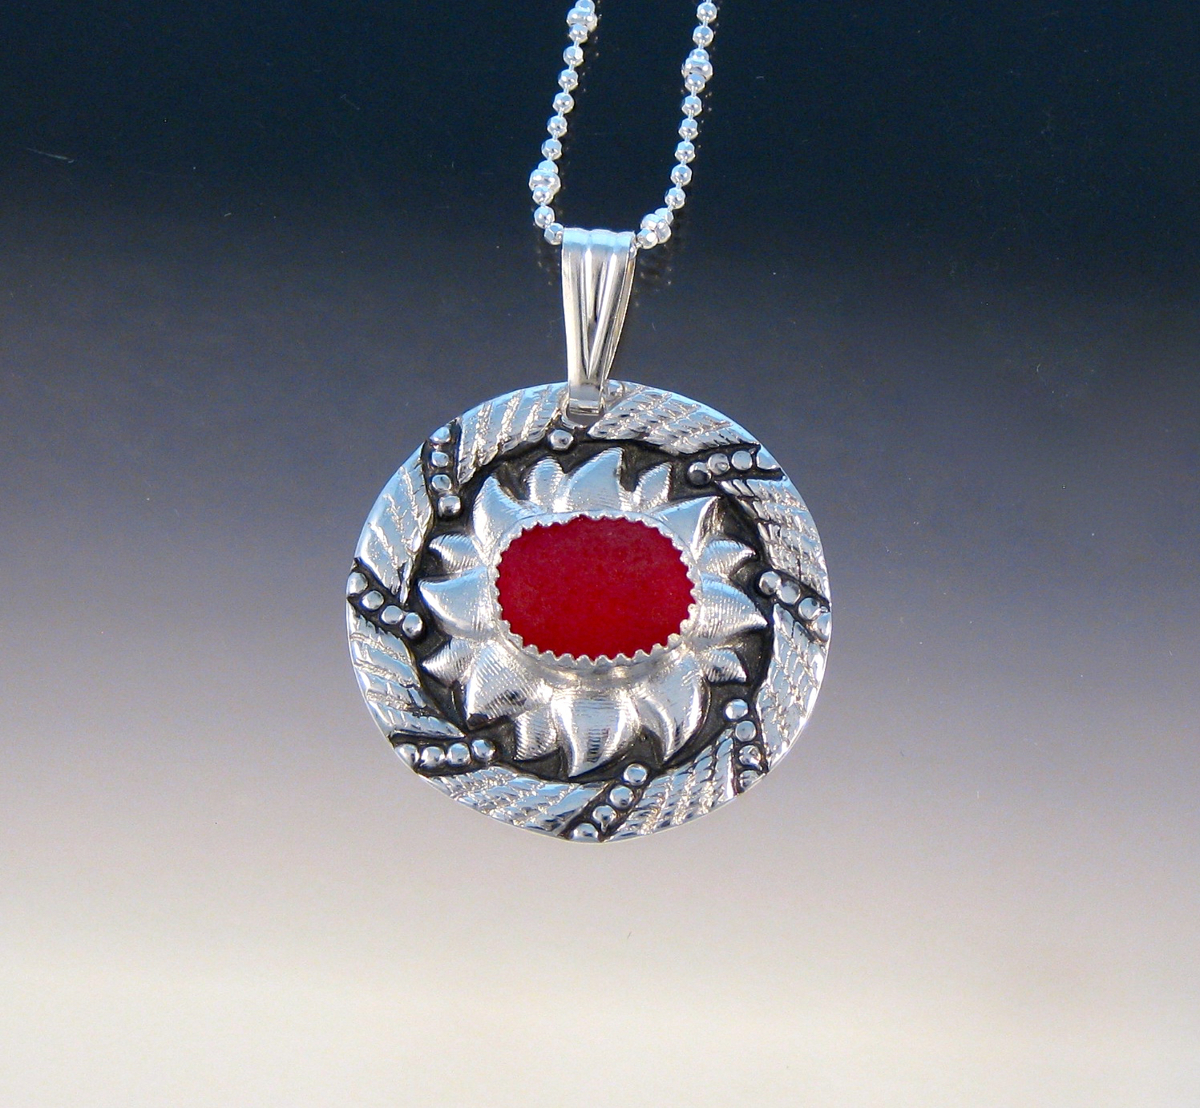 P5273 - Ring of fire pendant (large view)